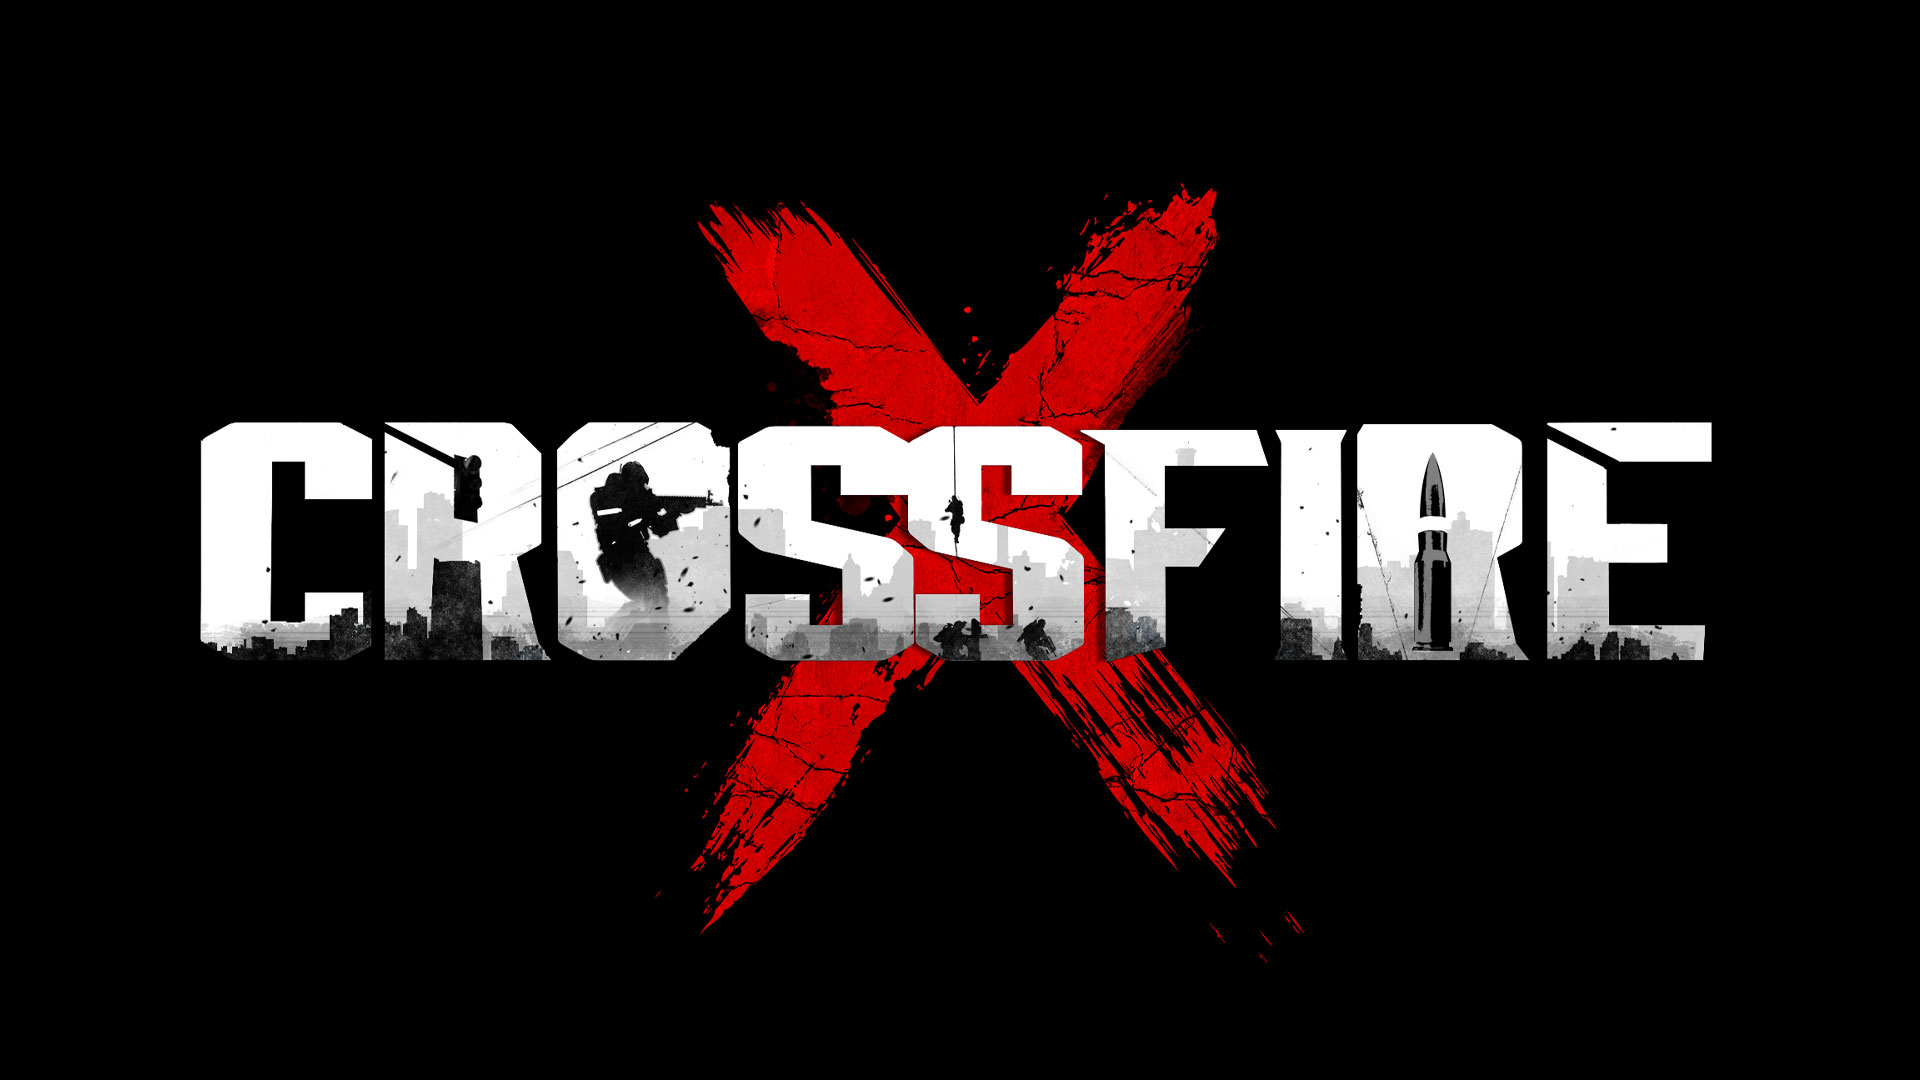 Logotipo do CrossfireX com fundo preto